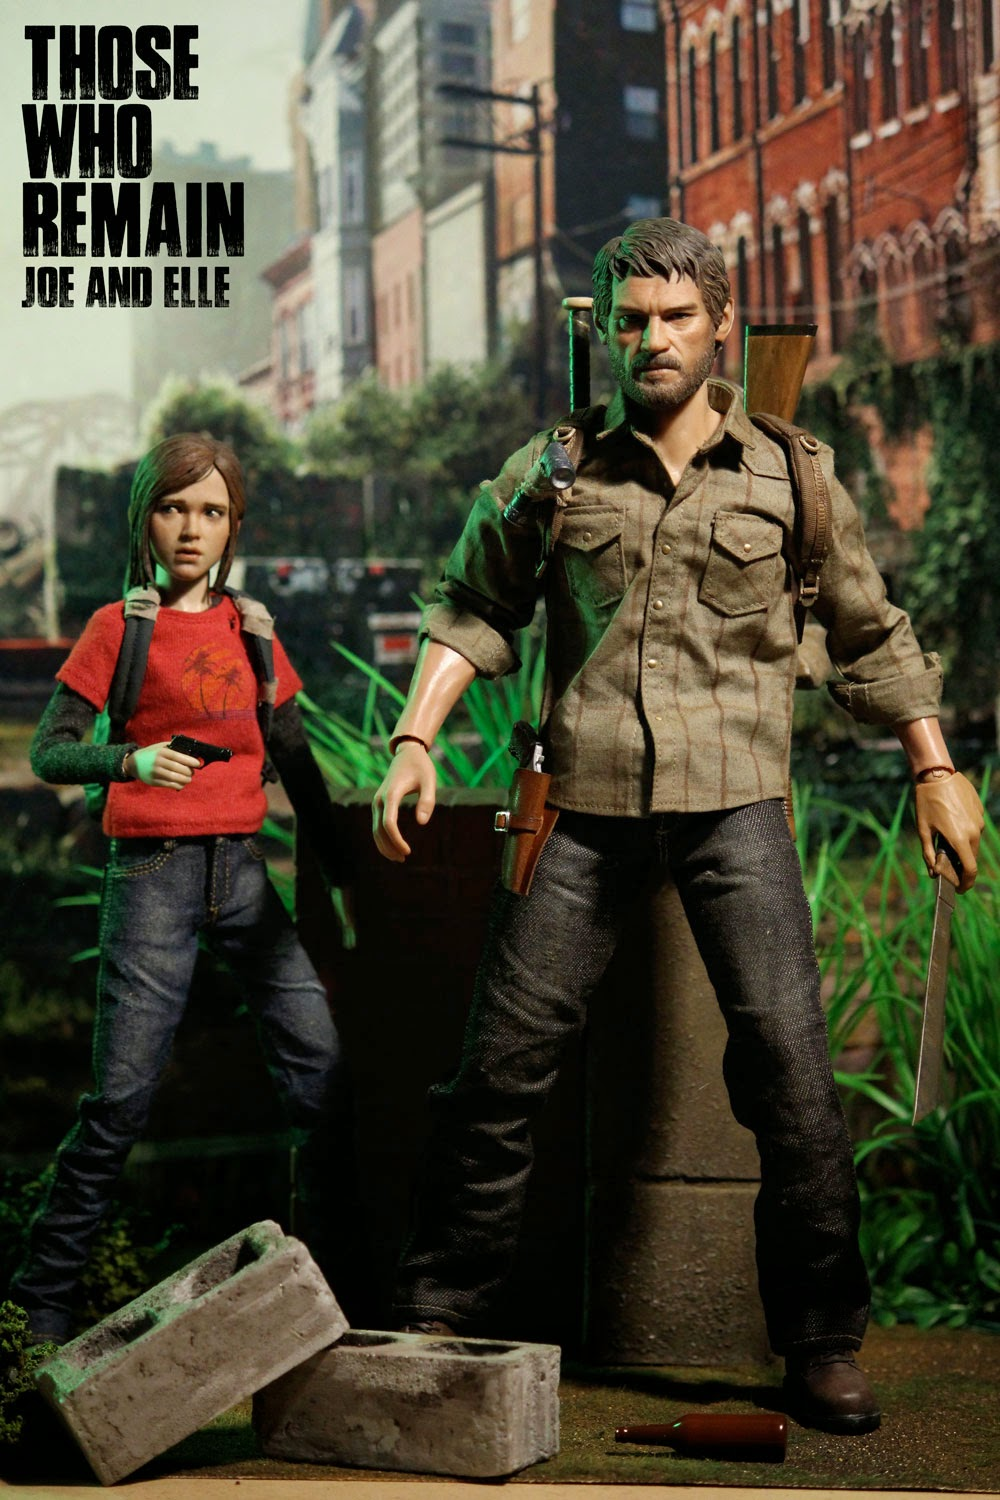 toyhaven iminime 1 6 scale custom figures those who remain joe and elle figures they look. Black Bedroom Furniture Sets. Home Design Ideas